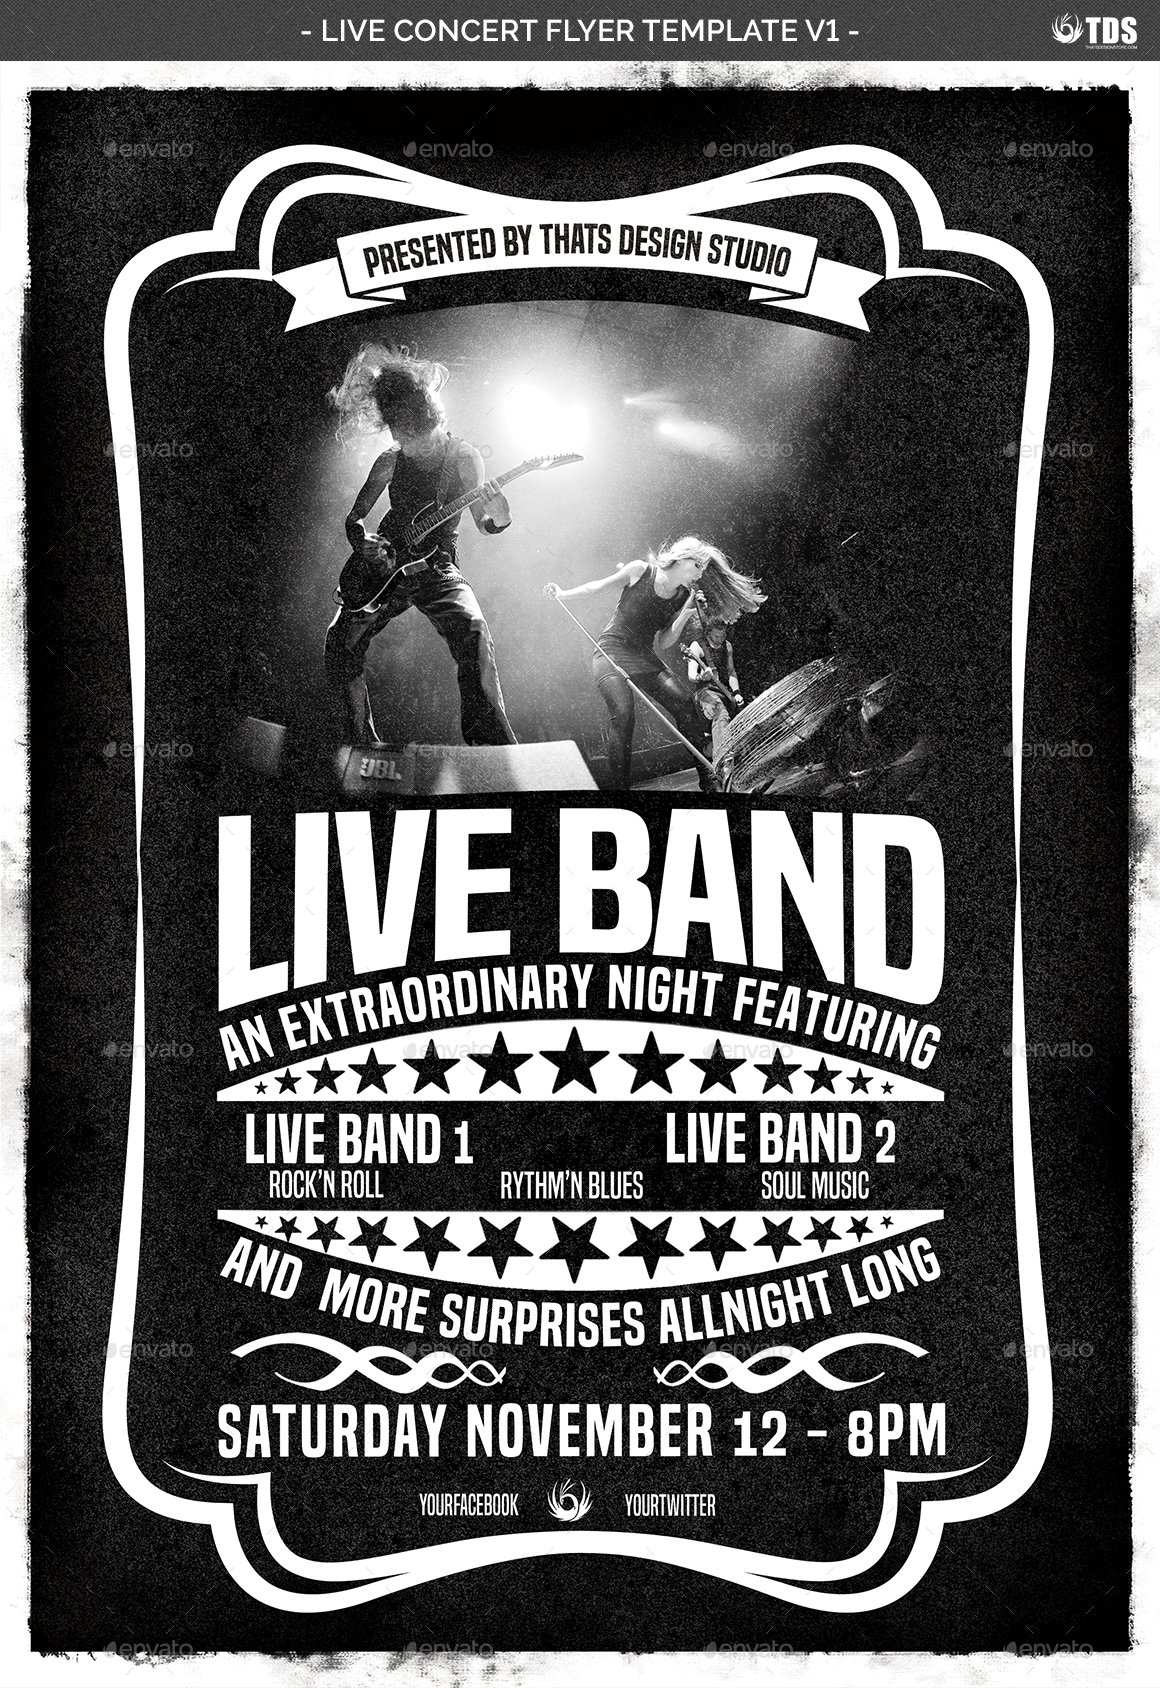 Live Concert Flyer Template V1 by lou606 – Band Flyer Template